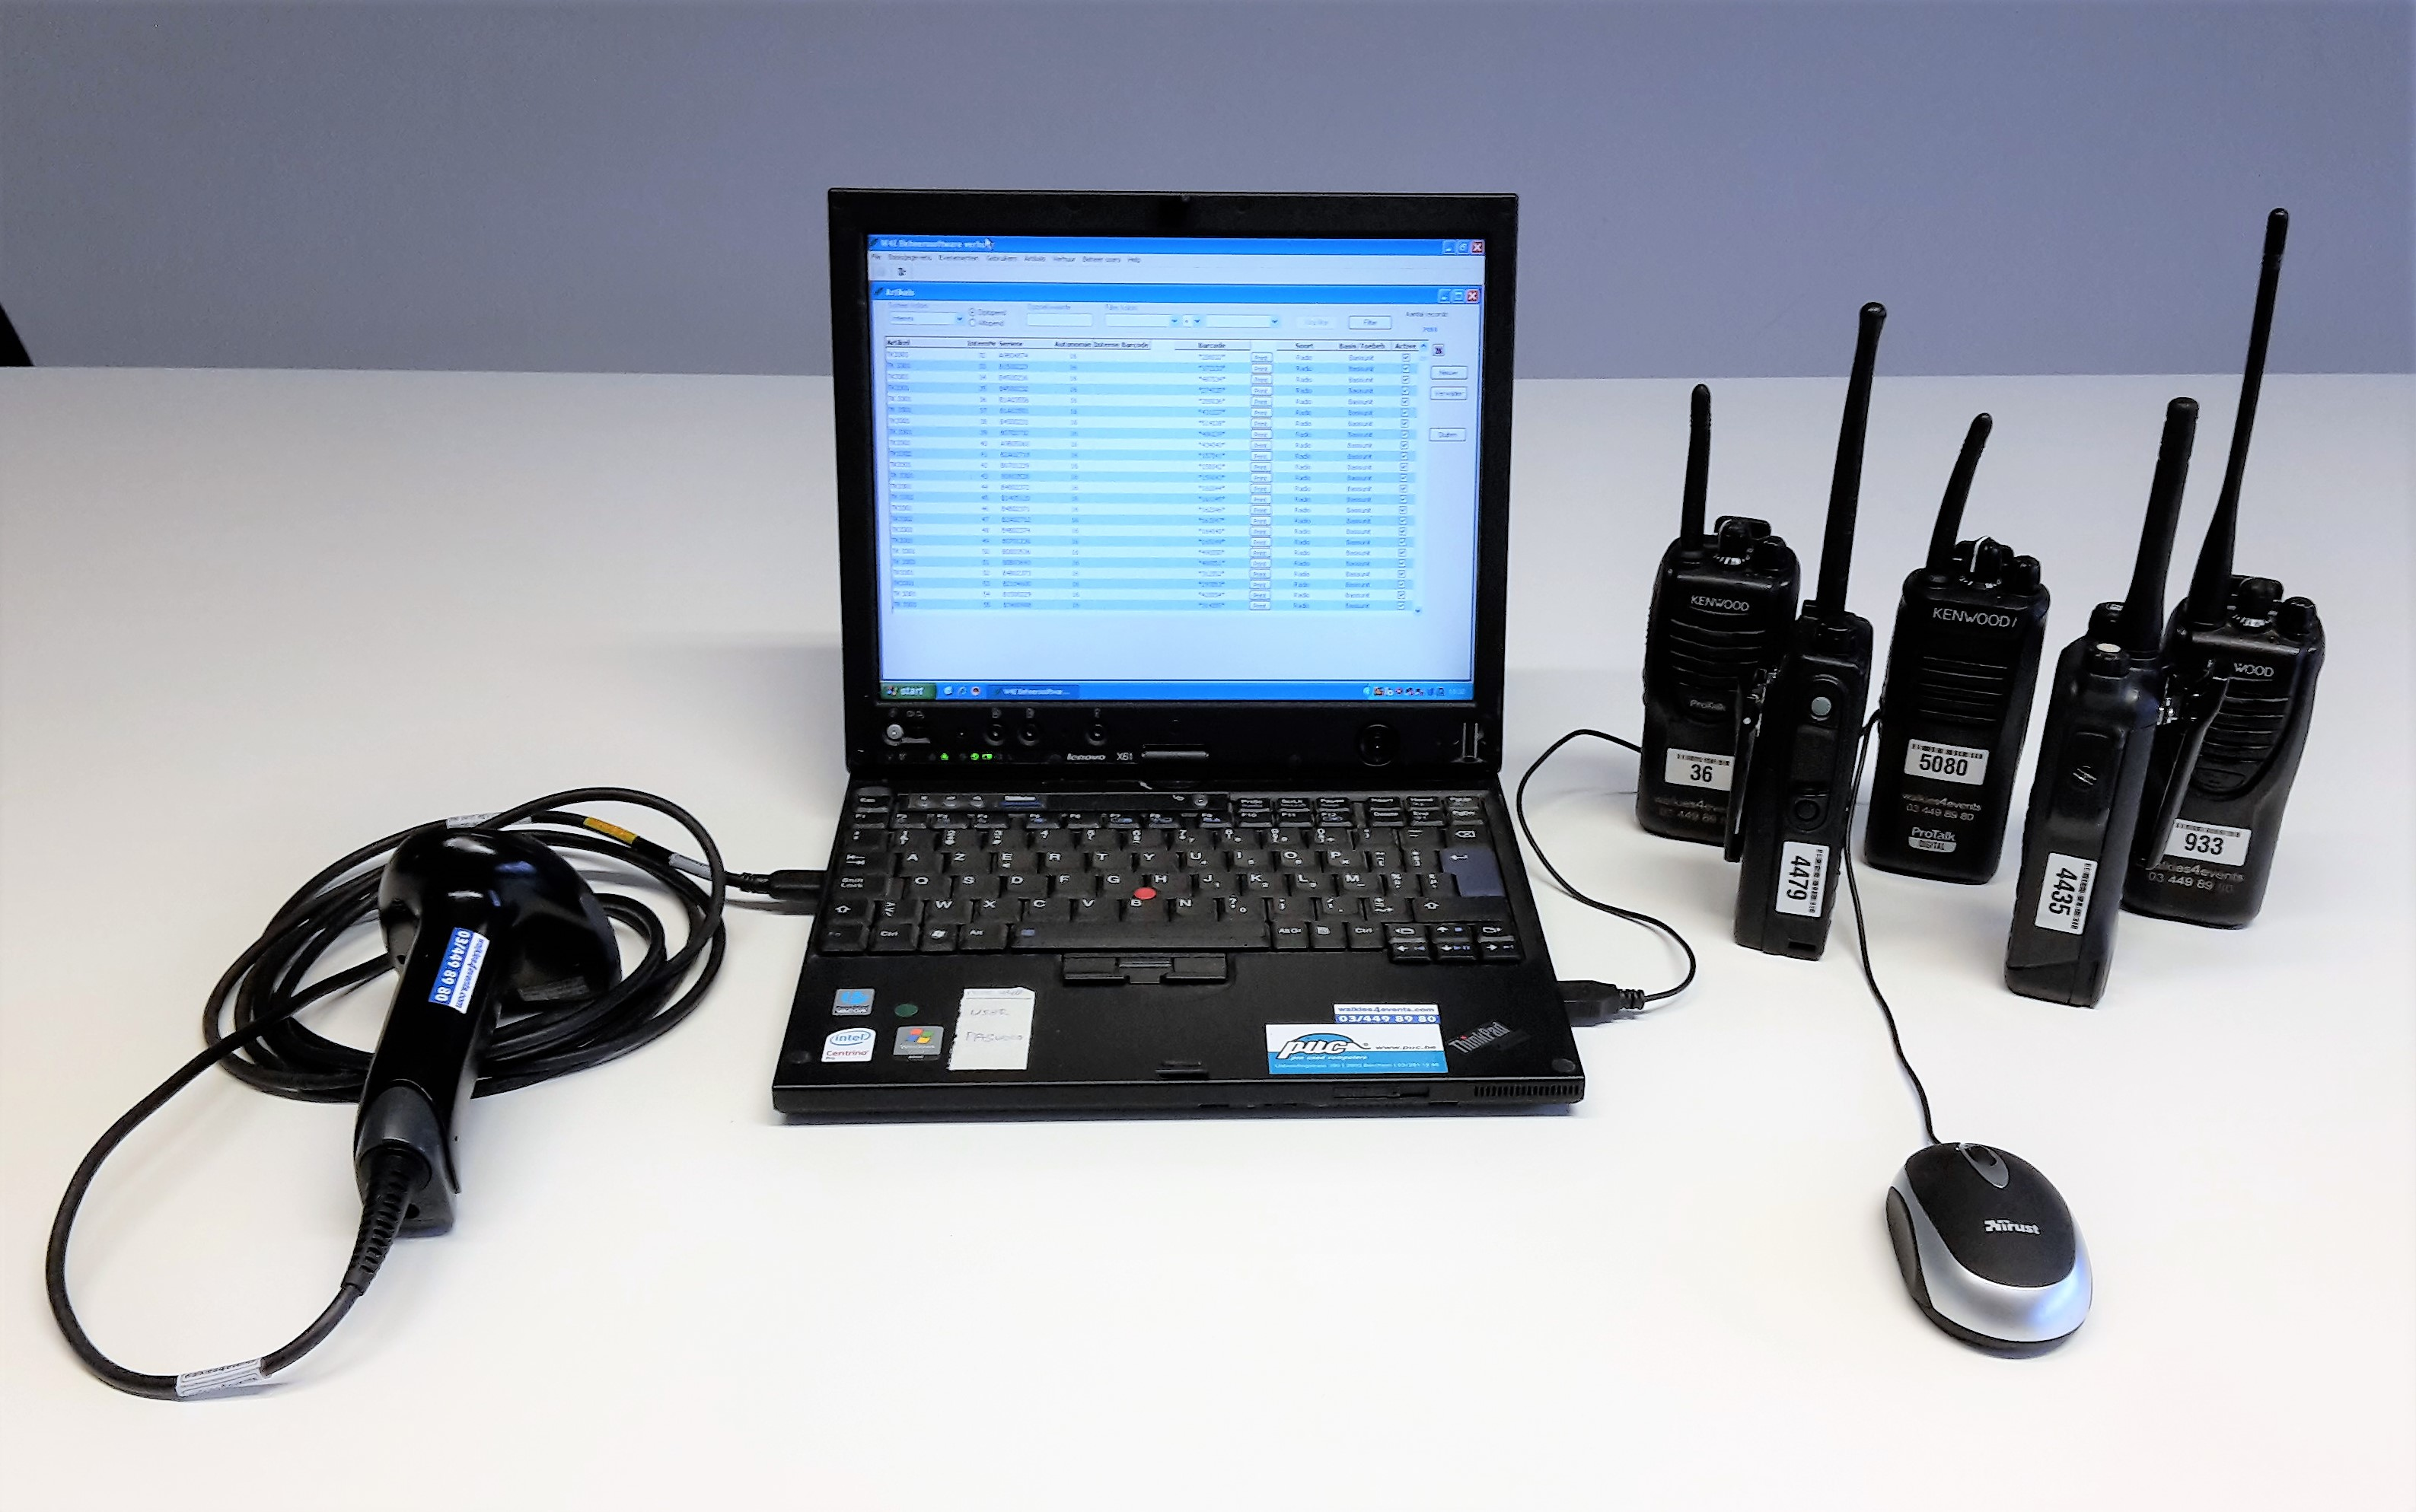 Walkies4Events - Diensten - Scanning walkietalkies met scanlaptop en scanner